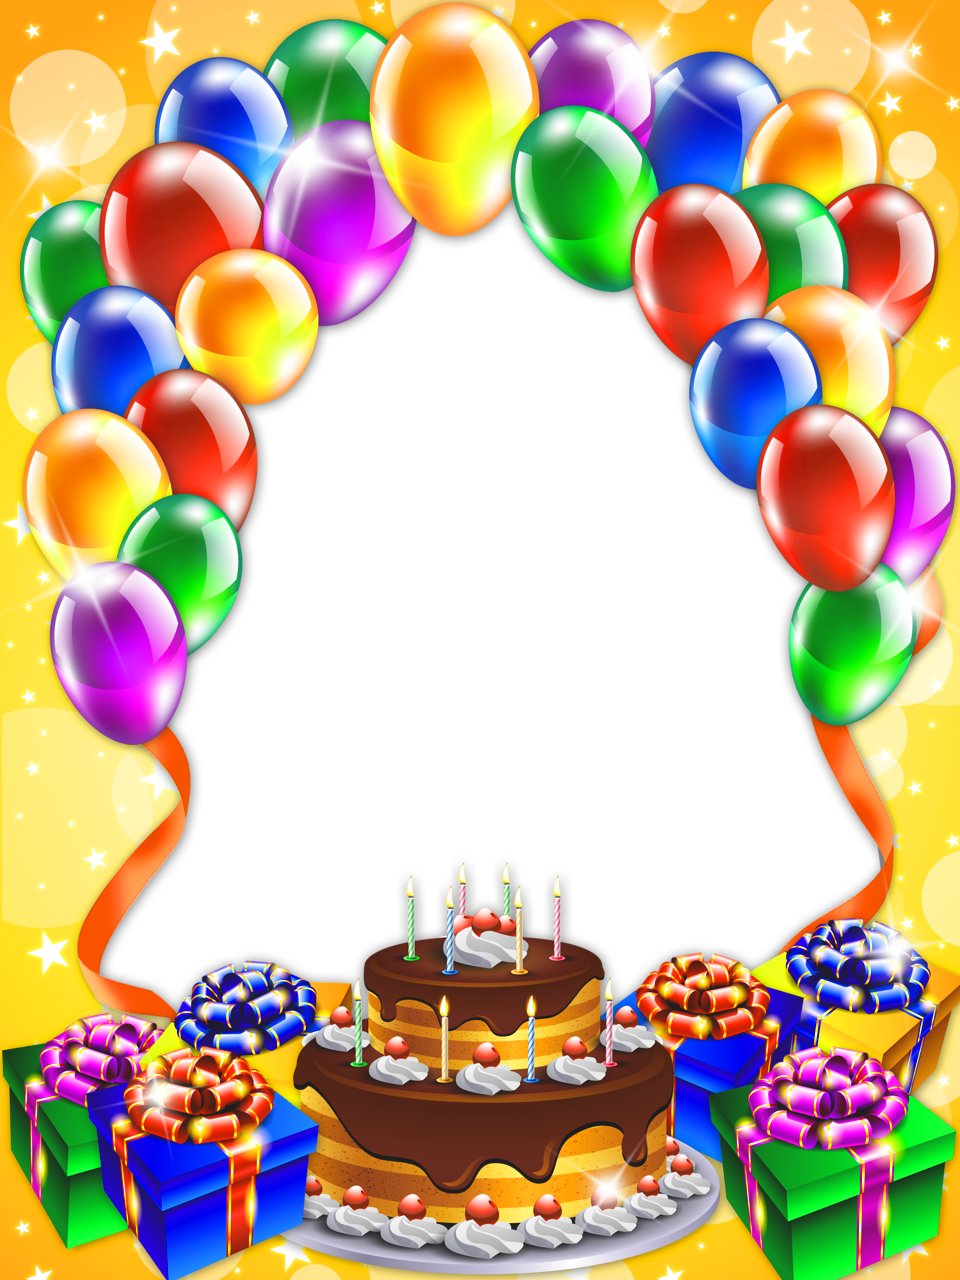 Birthday background png. Happy transparent frame gallery